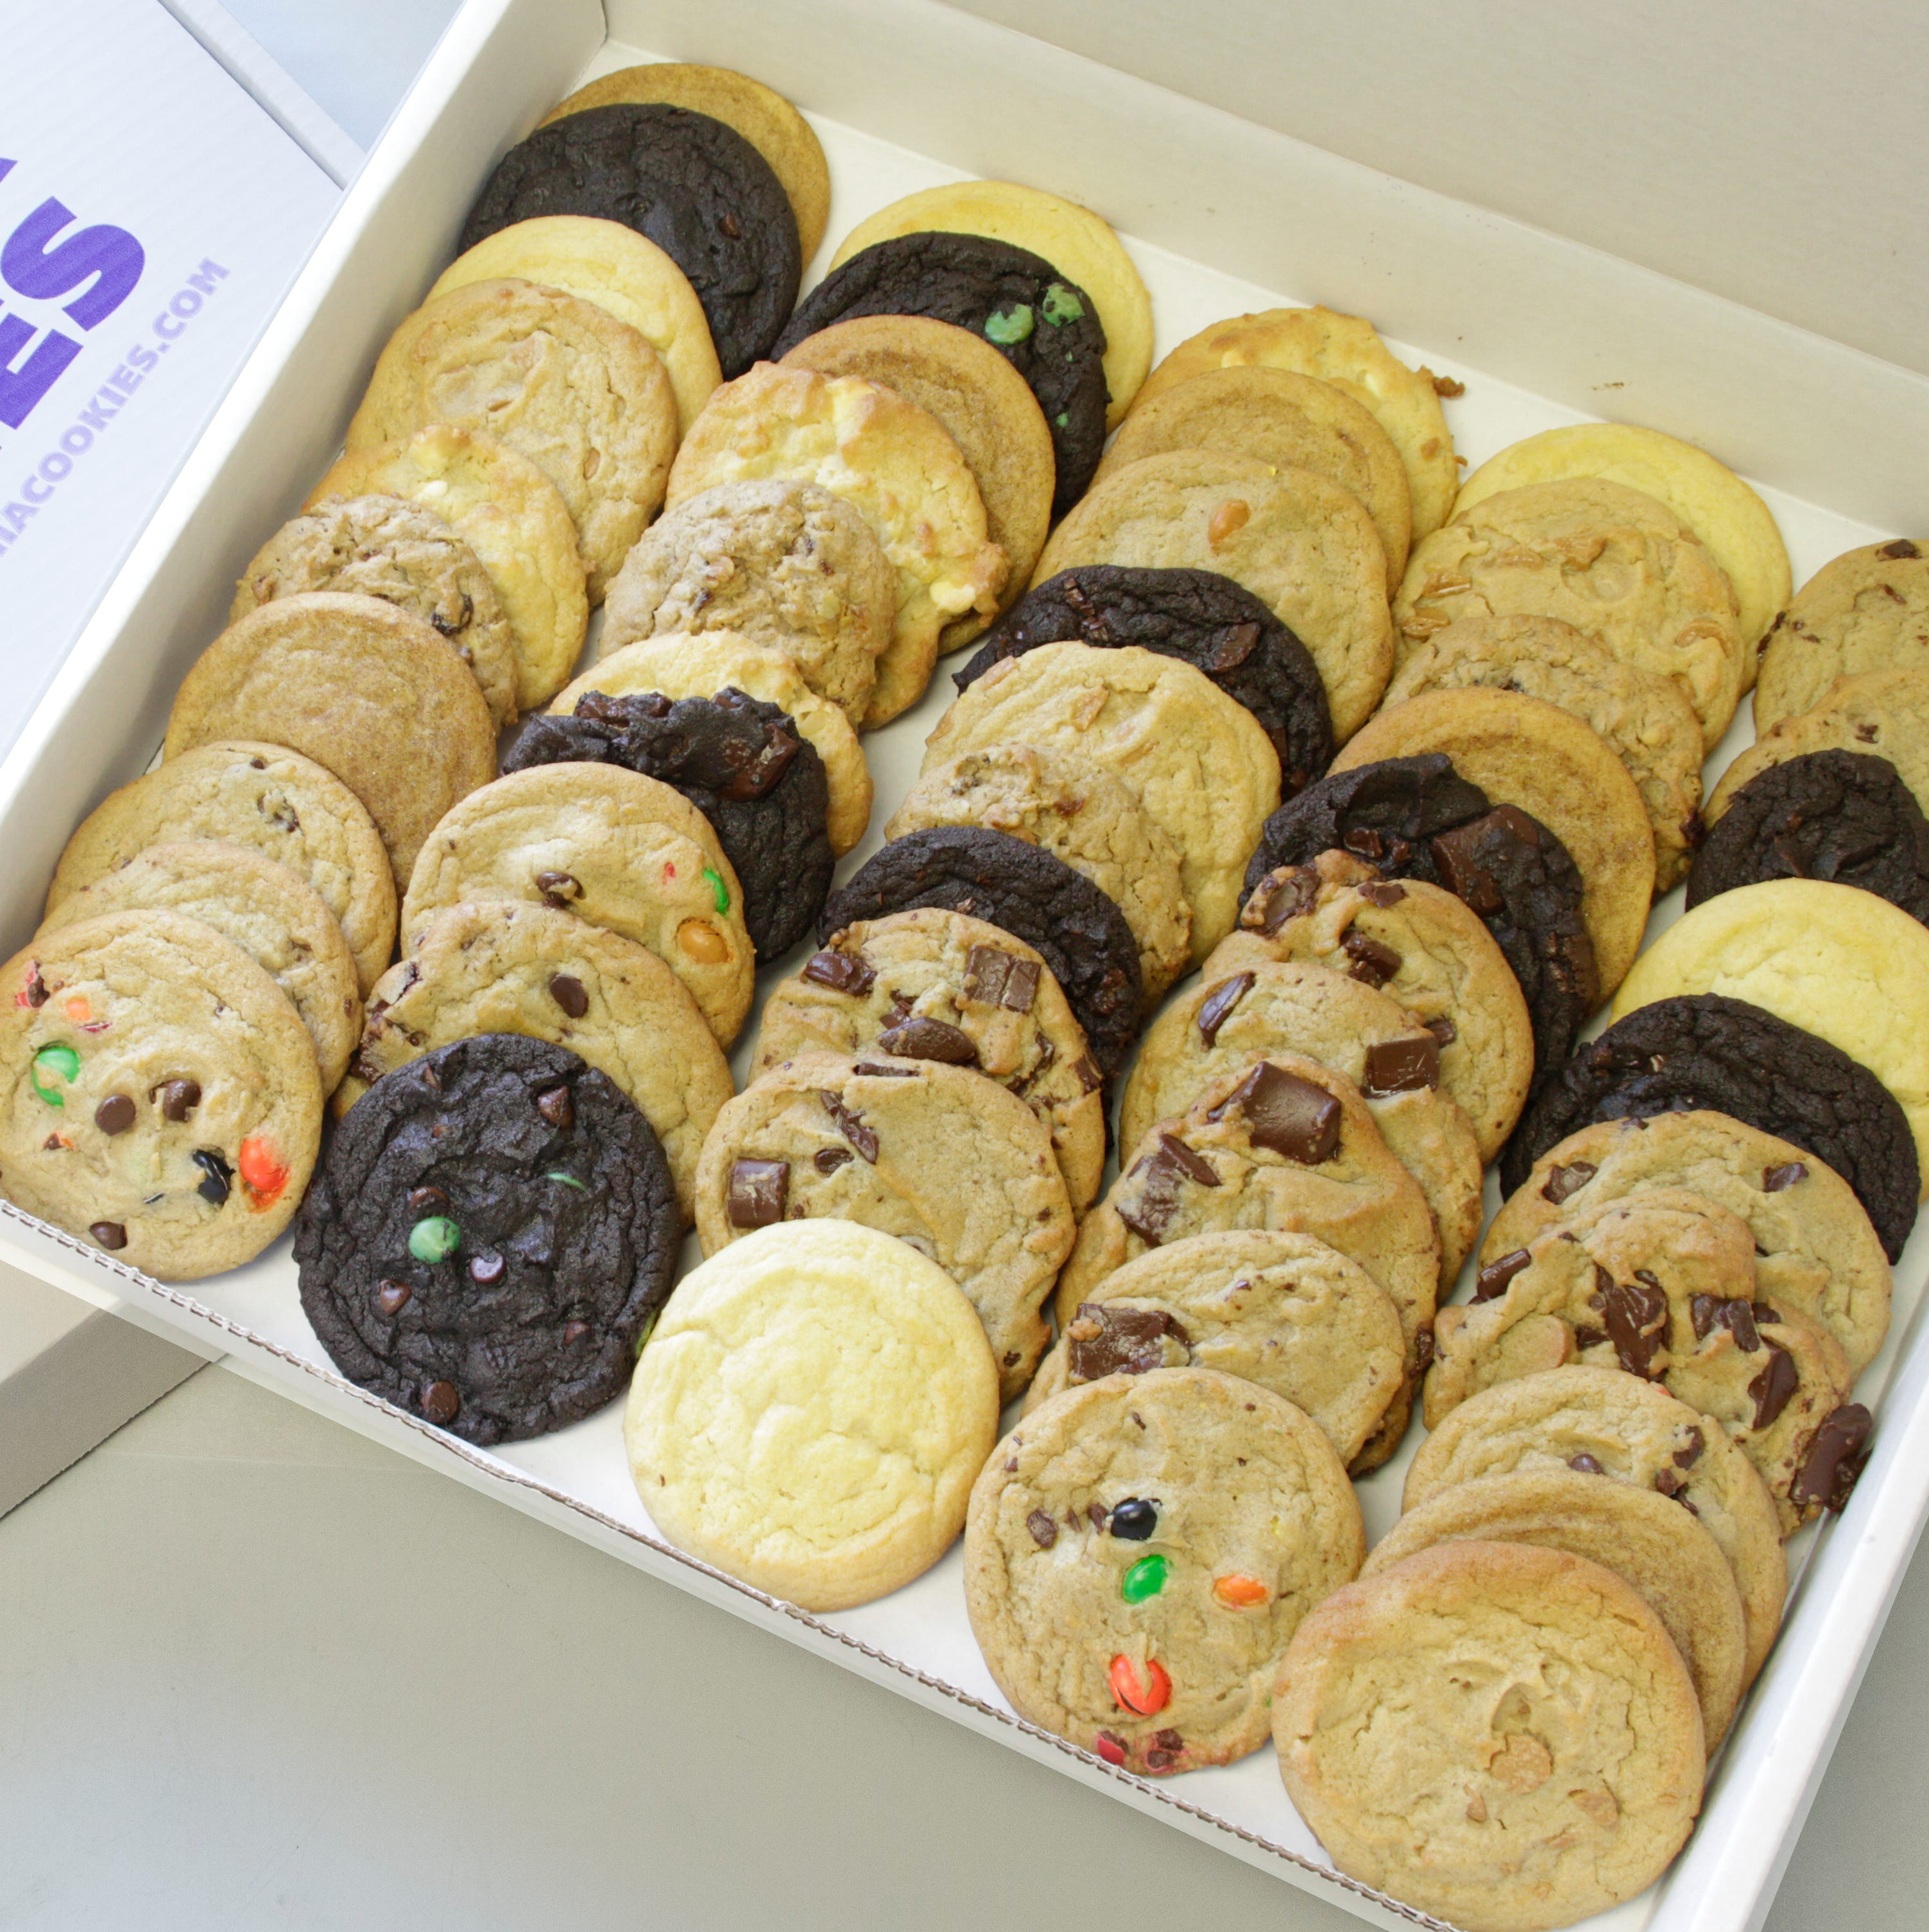 Insomnia Cookies is coming to Beale Street